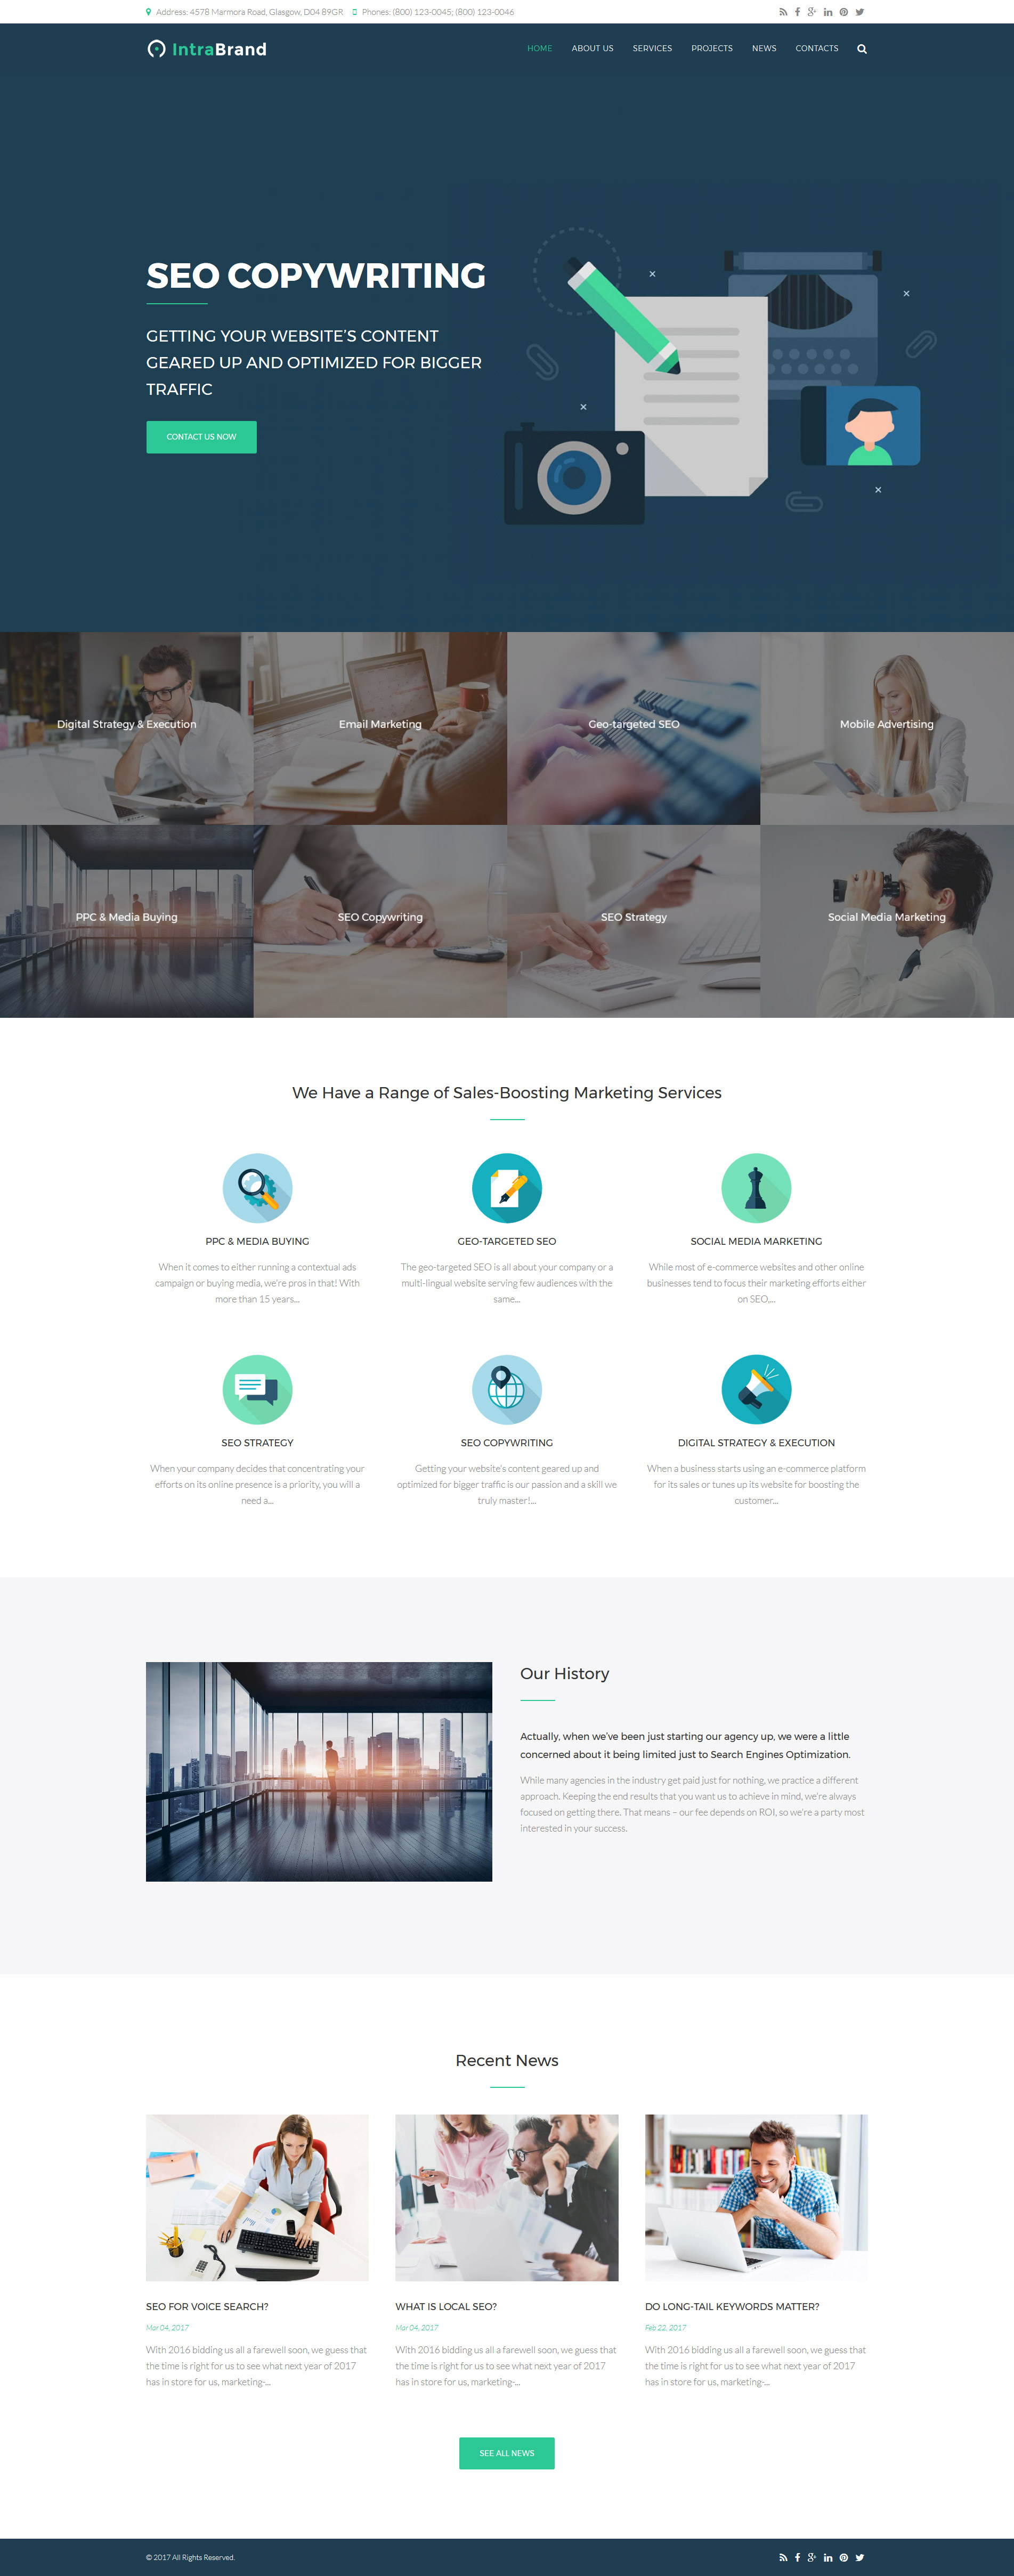 Website Design Template 63372 - products optimization company marketing advertising tools consulting advertisement consultation success